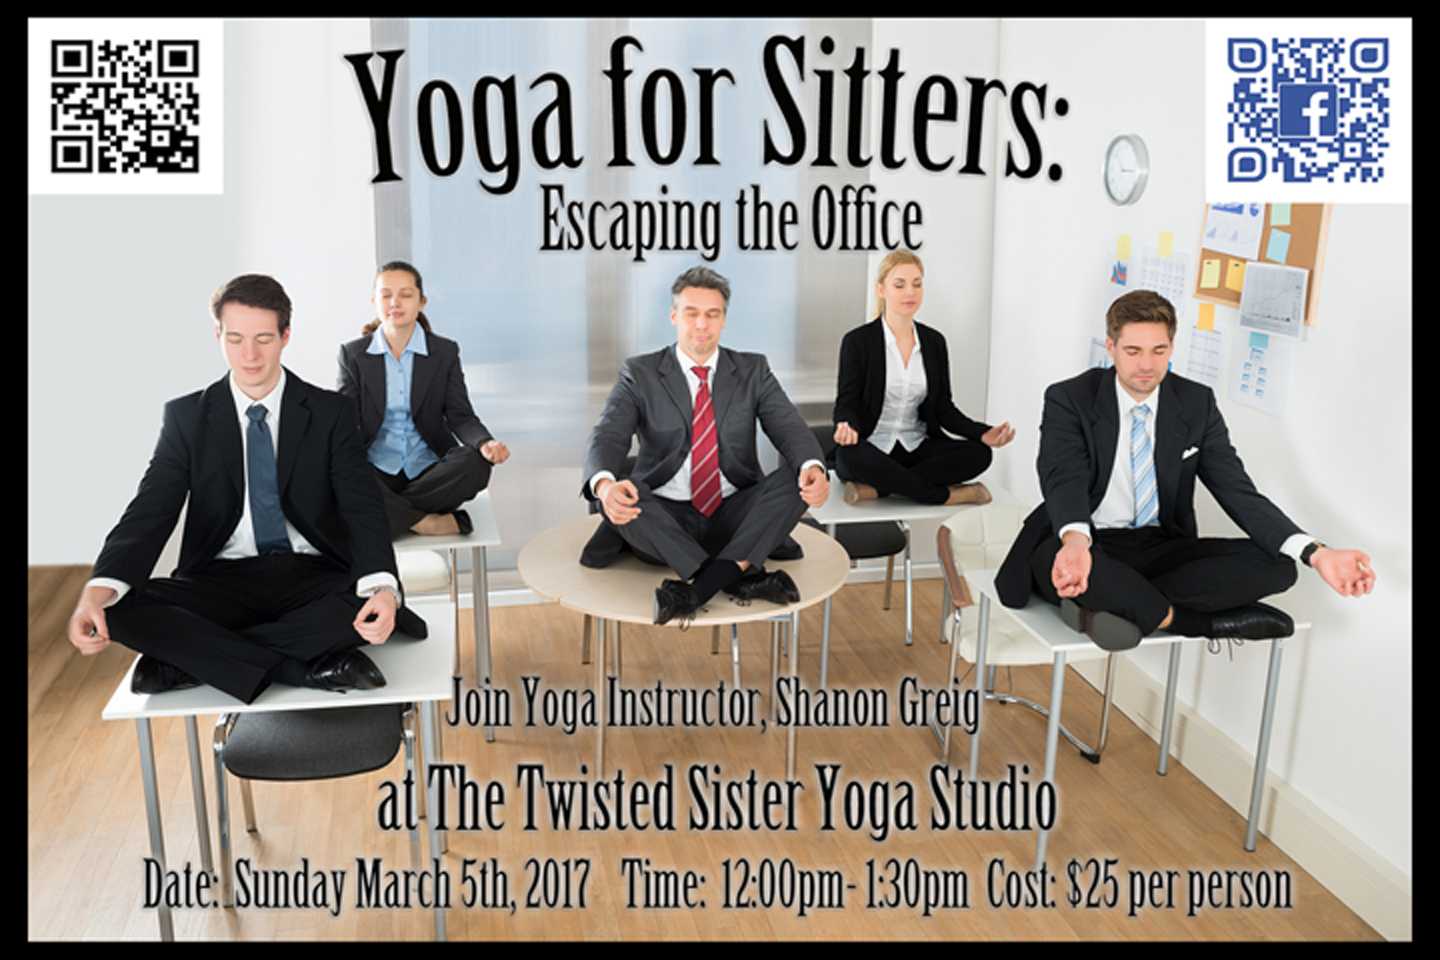 Workshop at The Twisted Sister Yoga Studio in Kernersville, NC.